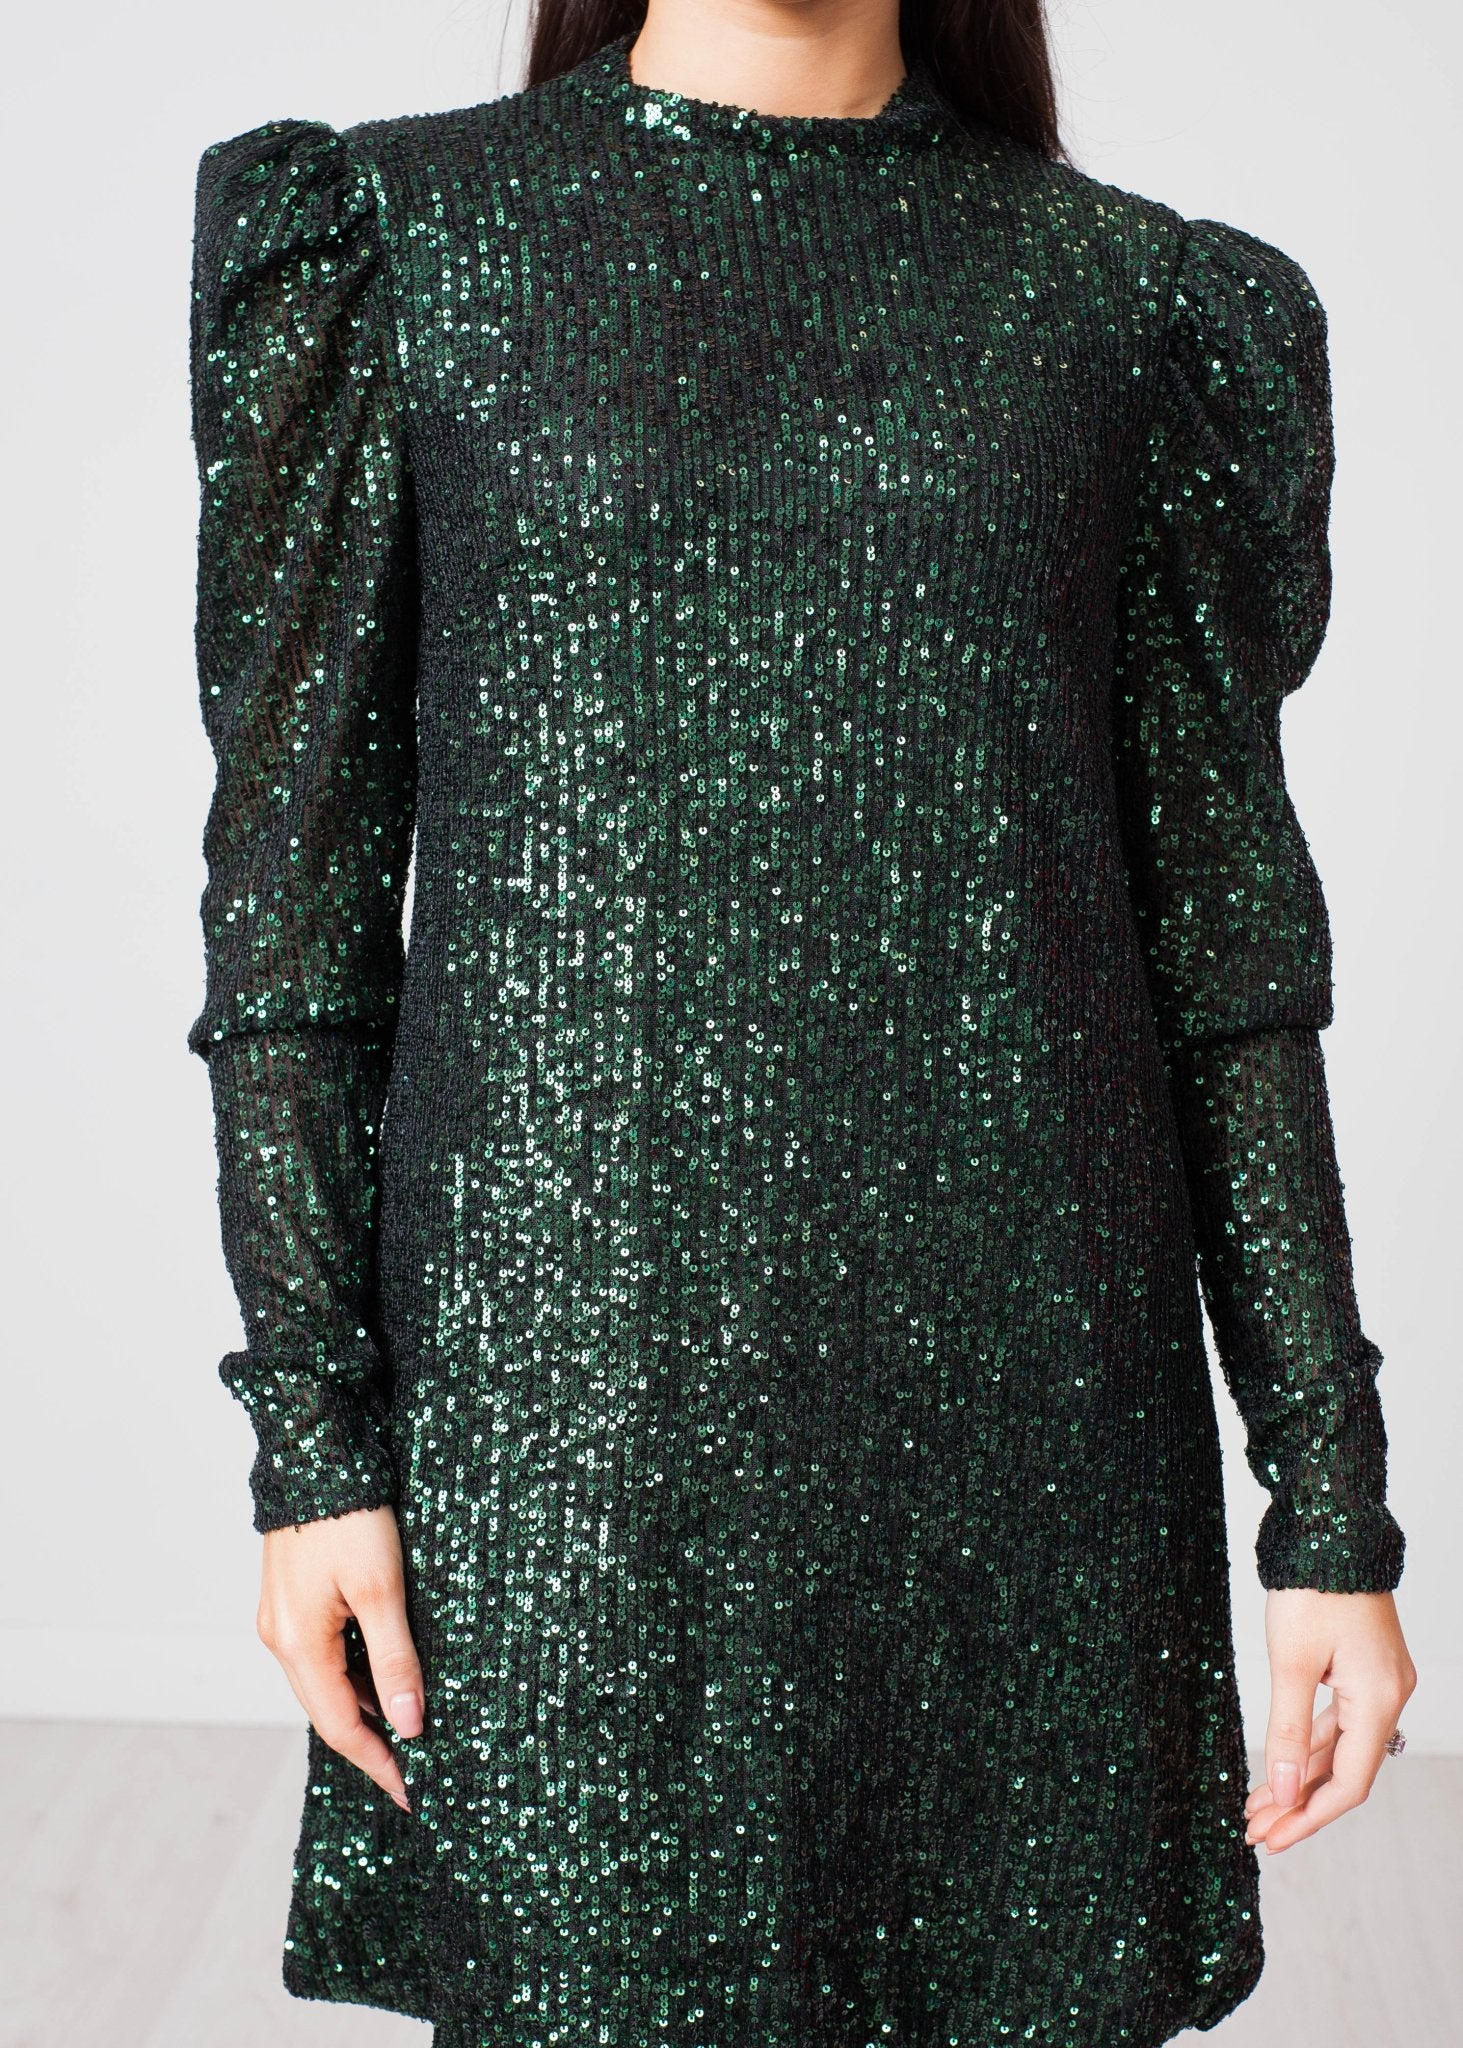 Nora Sequin Mini Dress In Green - The Walk in Wardrobe